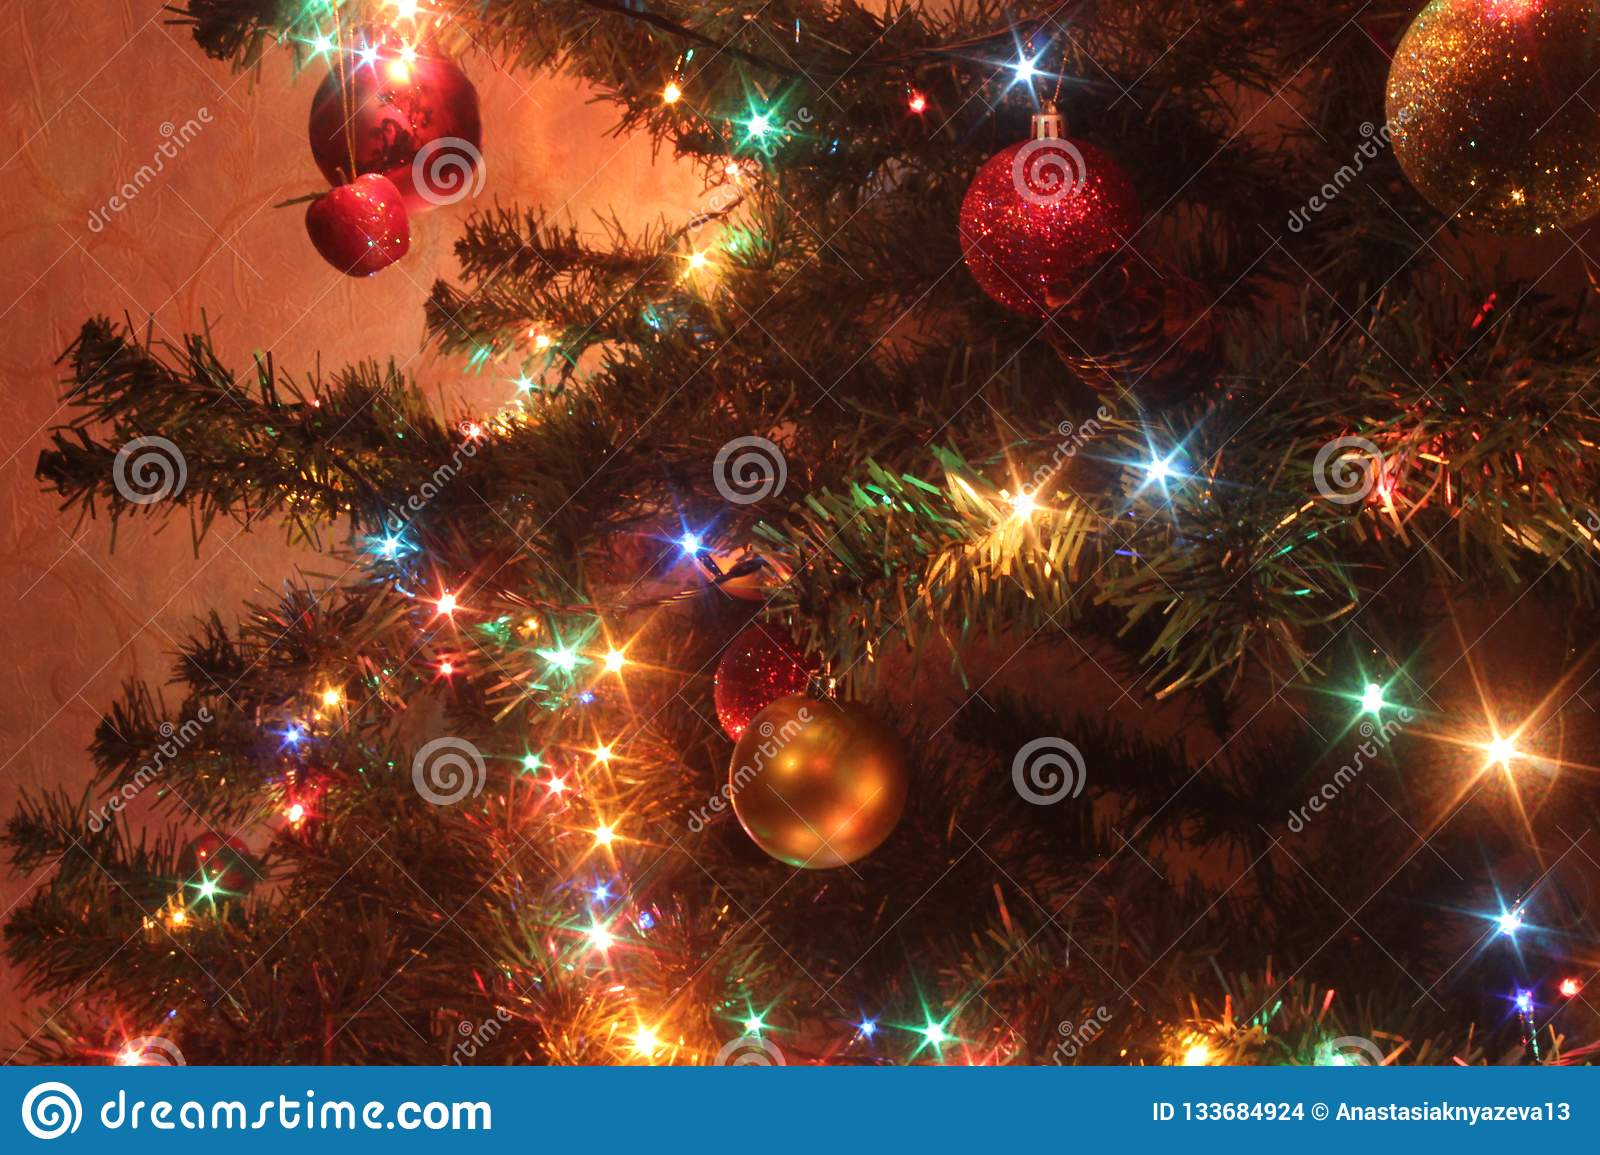 6 326 Christmas Tree Colored Lights Photos Free Royalty Free Stock Photos From Dreamstime